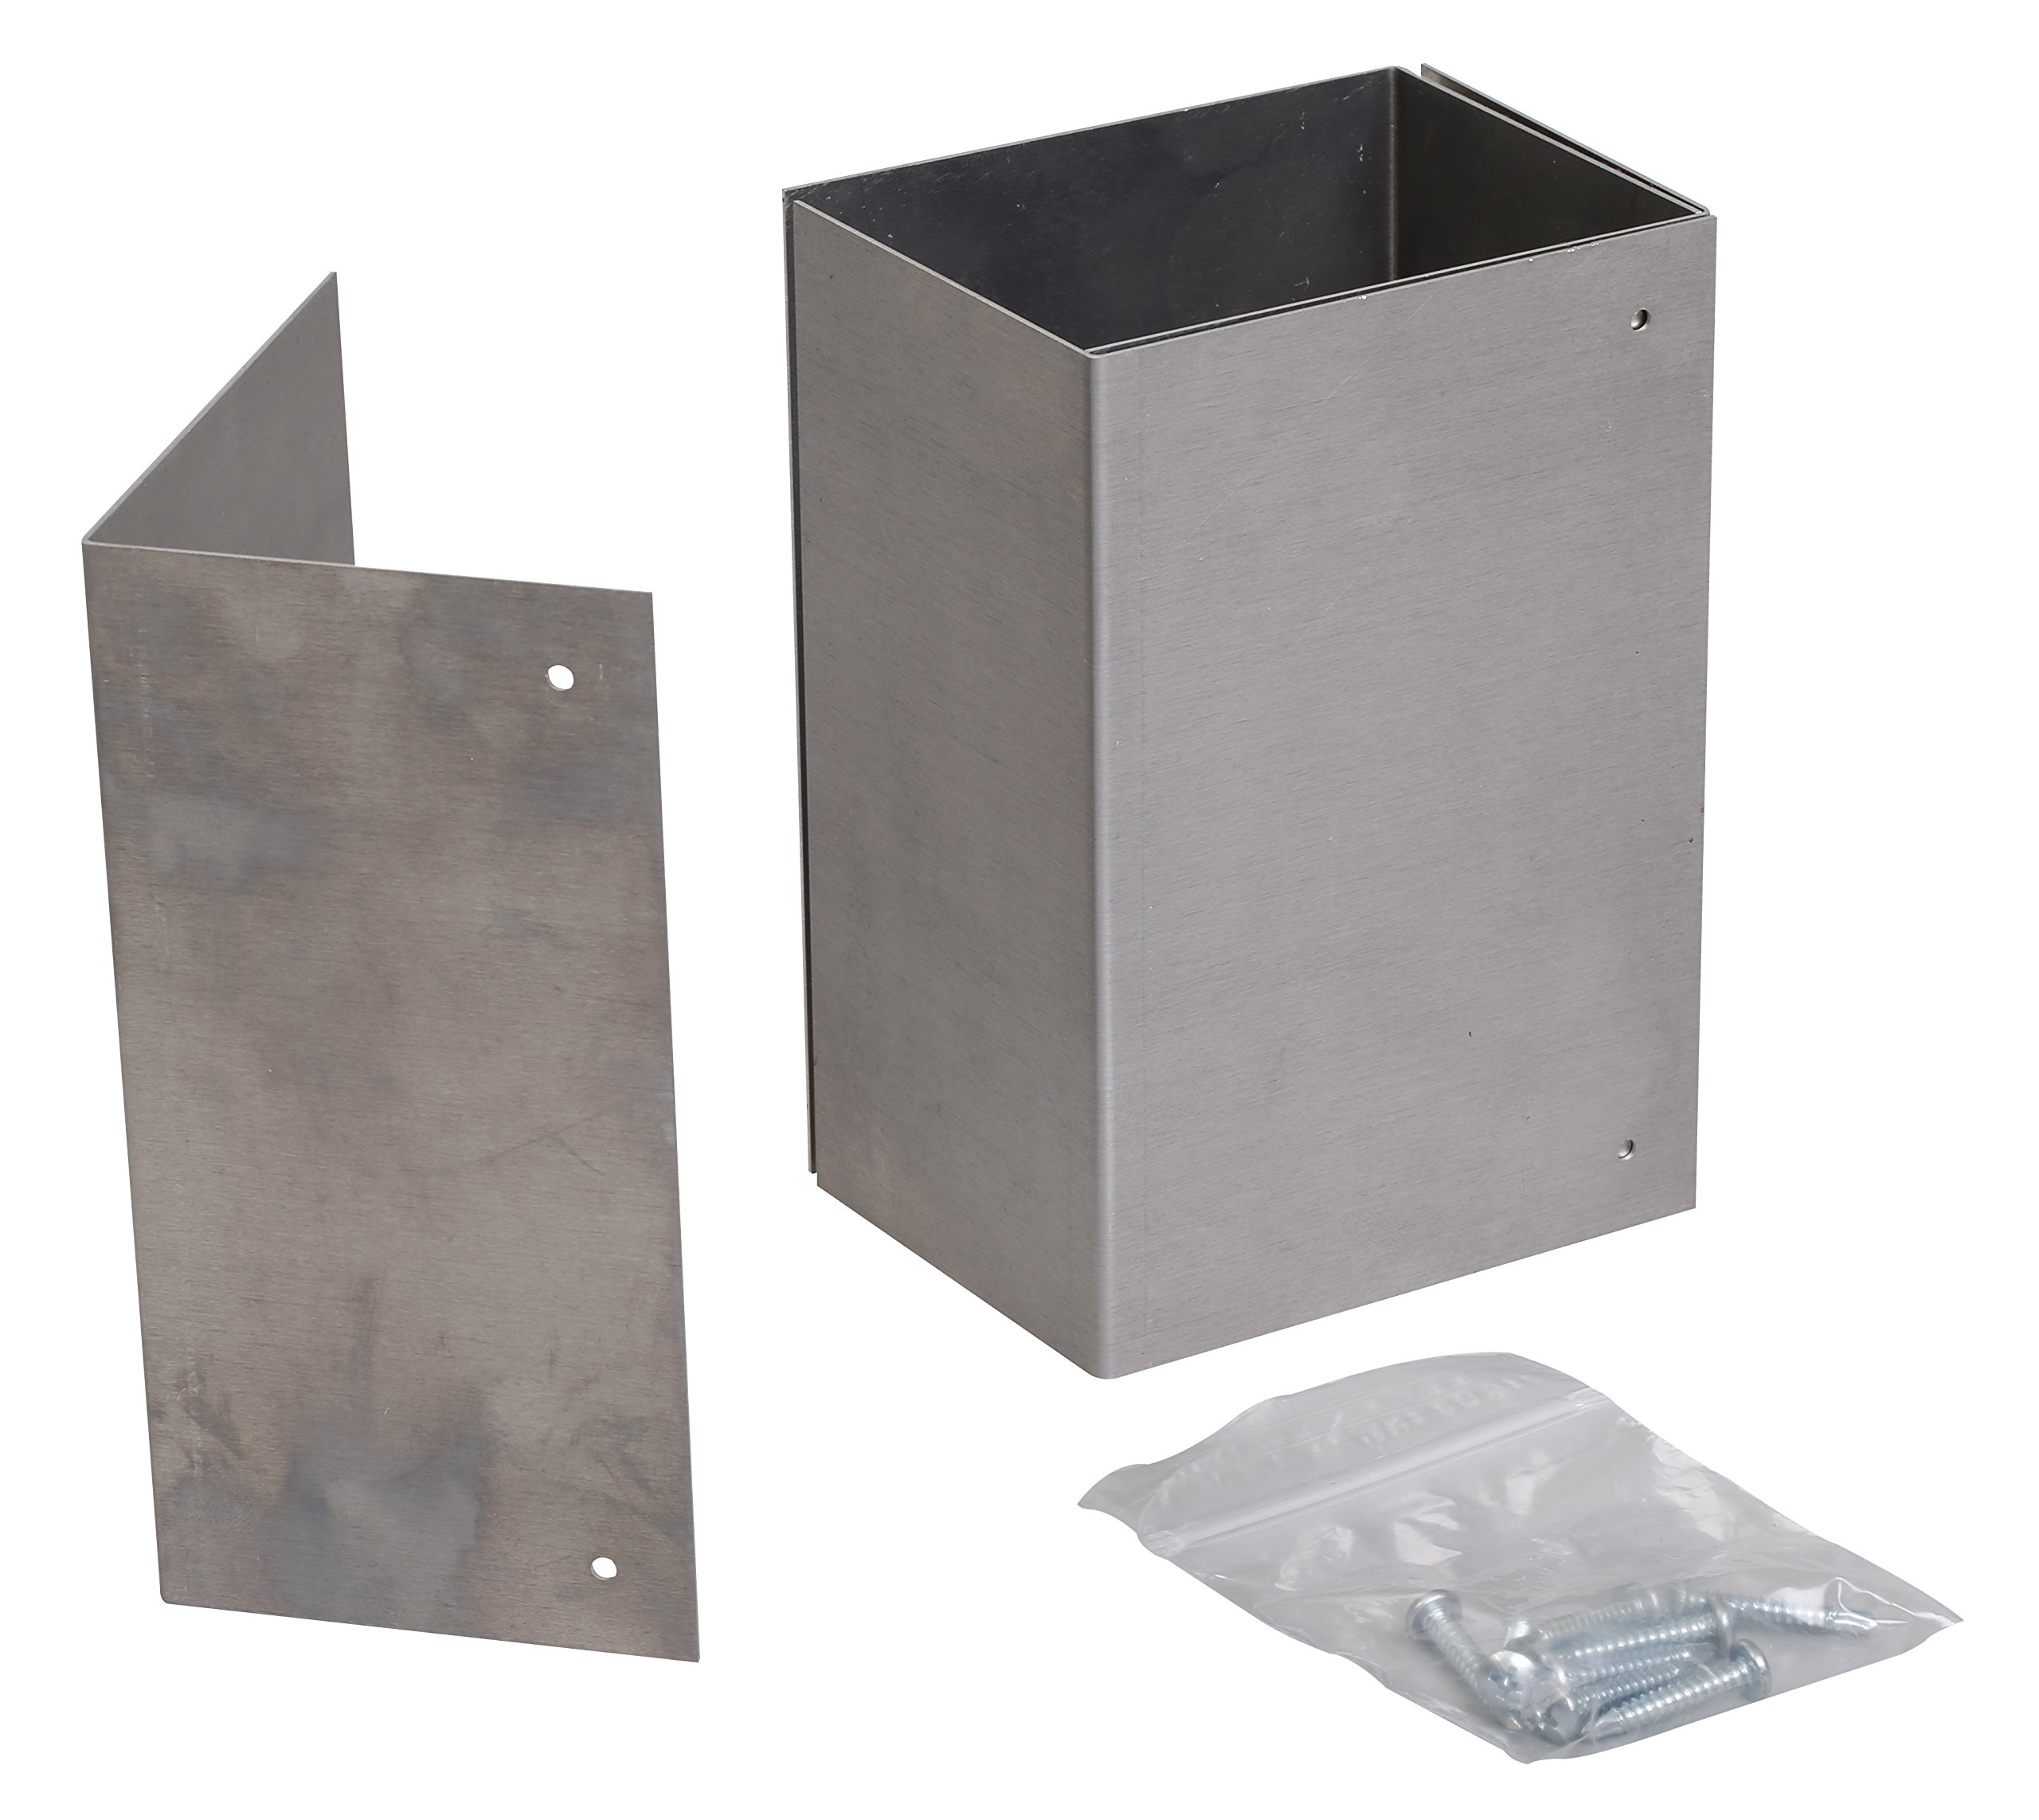 4x6 Mailbox Post Aluminum Trimmer Guard: USA made, Rust-free solution to protect posts